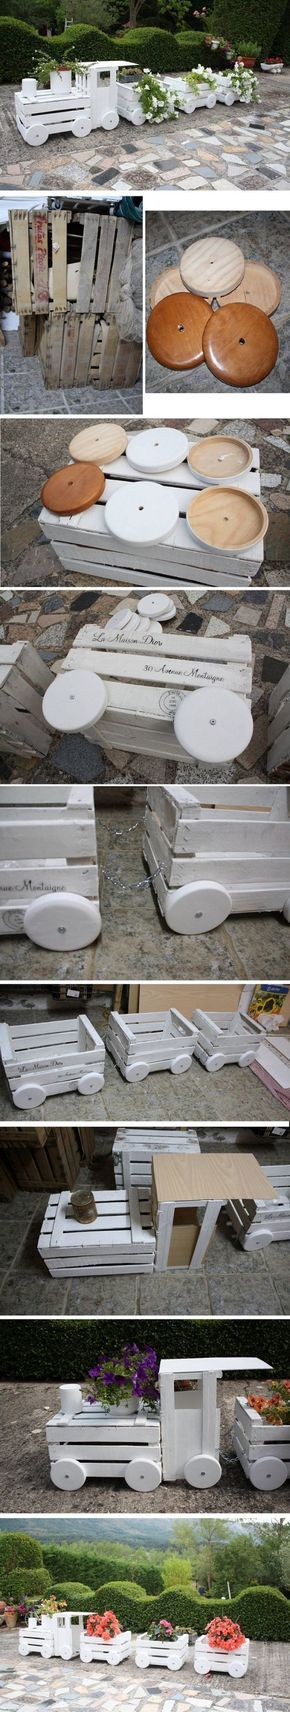 Build a Train Made Out Of Old Crates   WoodworkerZ.com